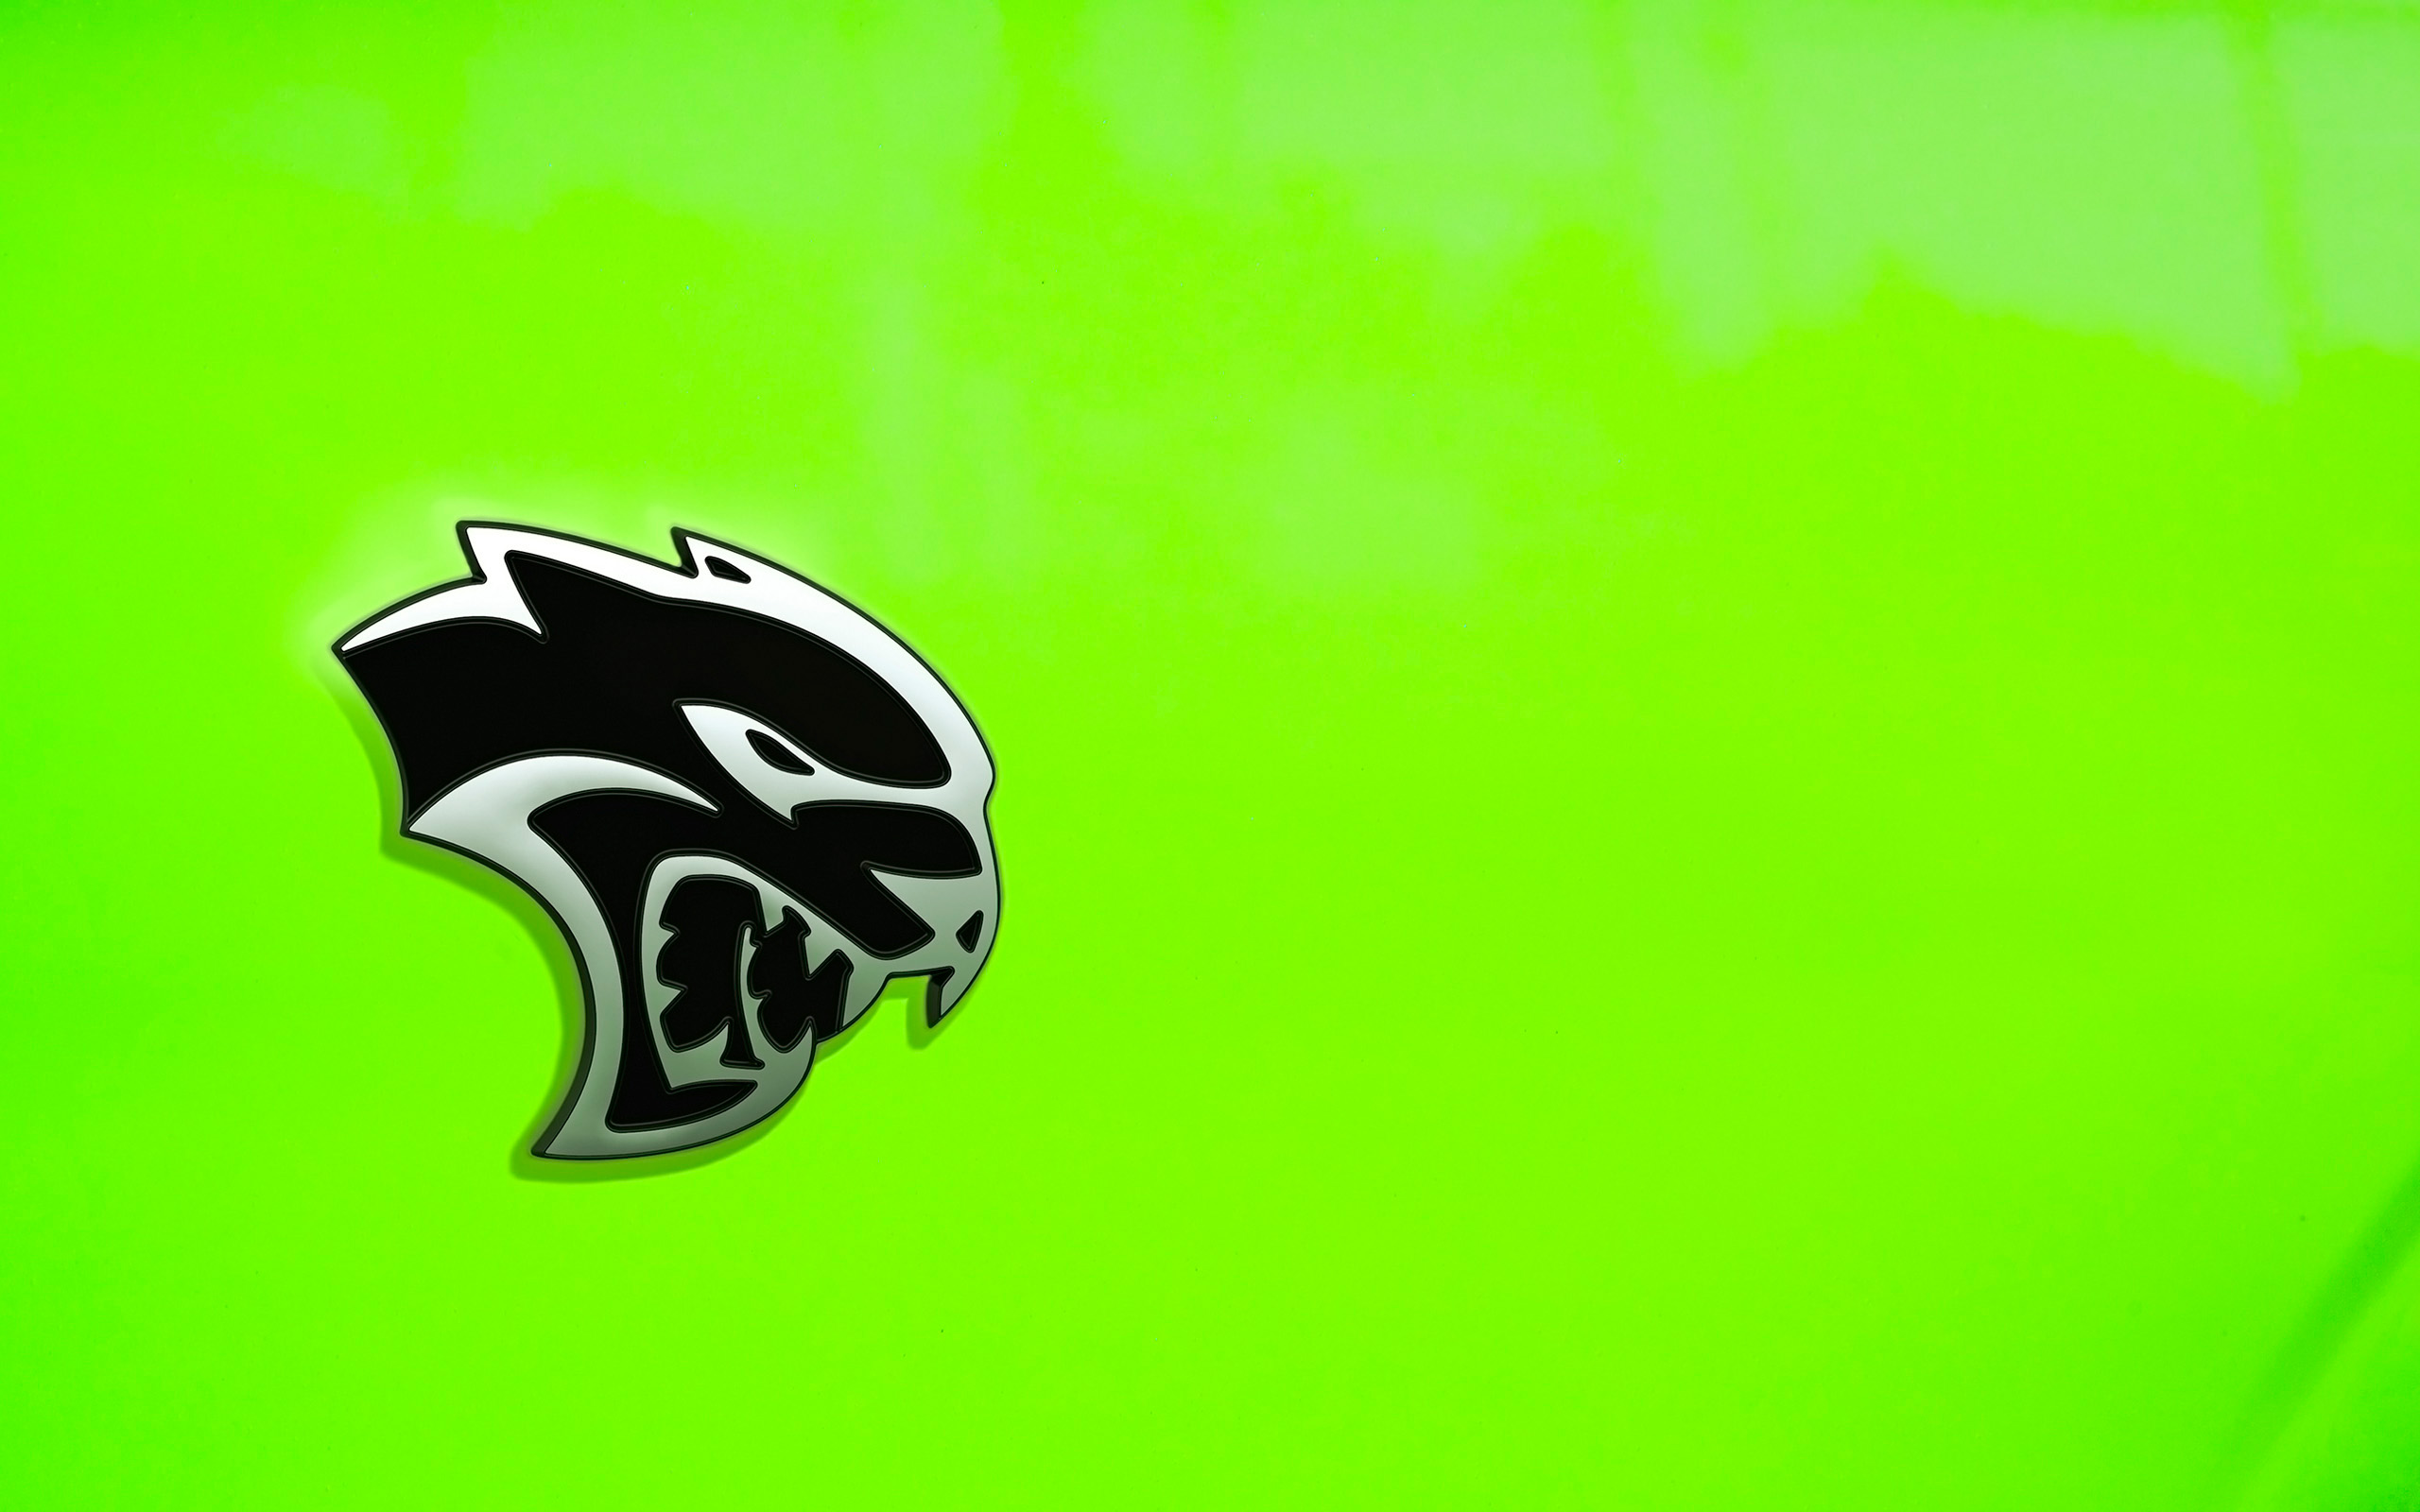 Hellcat Logo Background Hd 2560x1600 Wallpaper Teahub Io